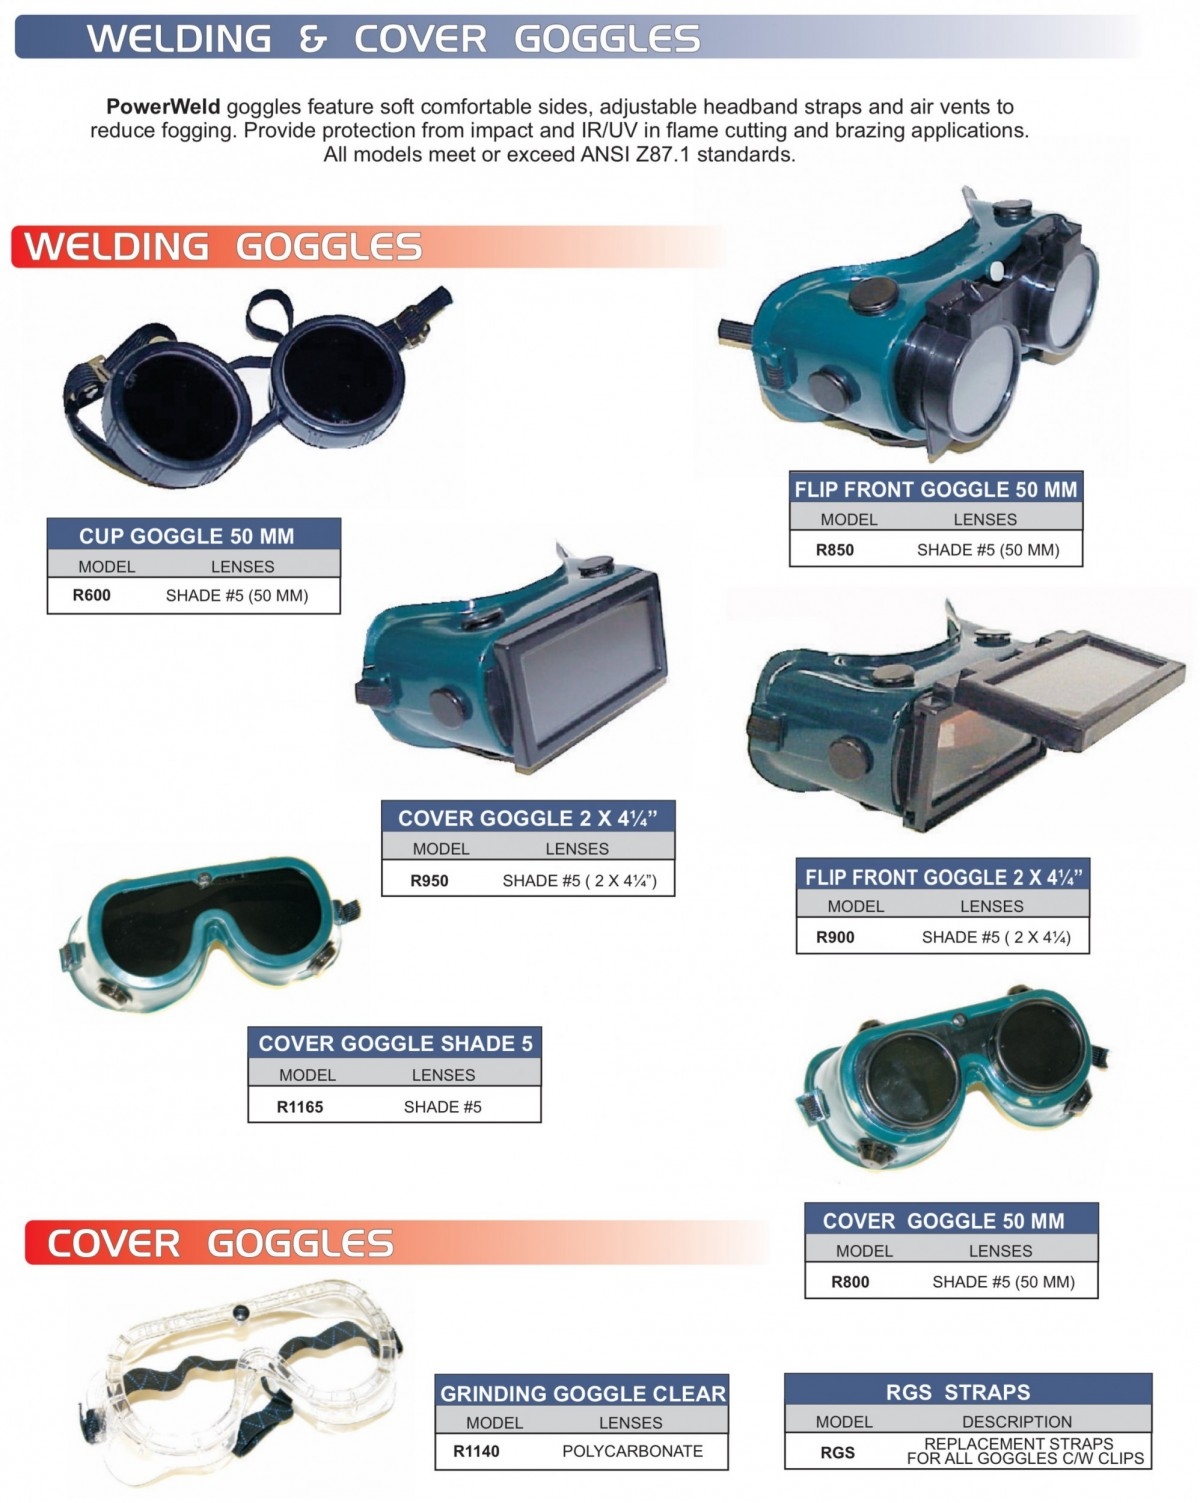 Welding & Cover Goggles